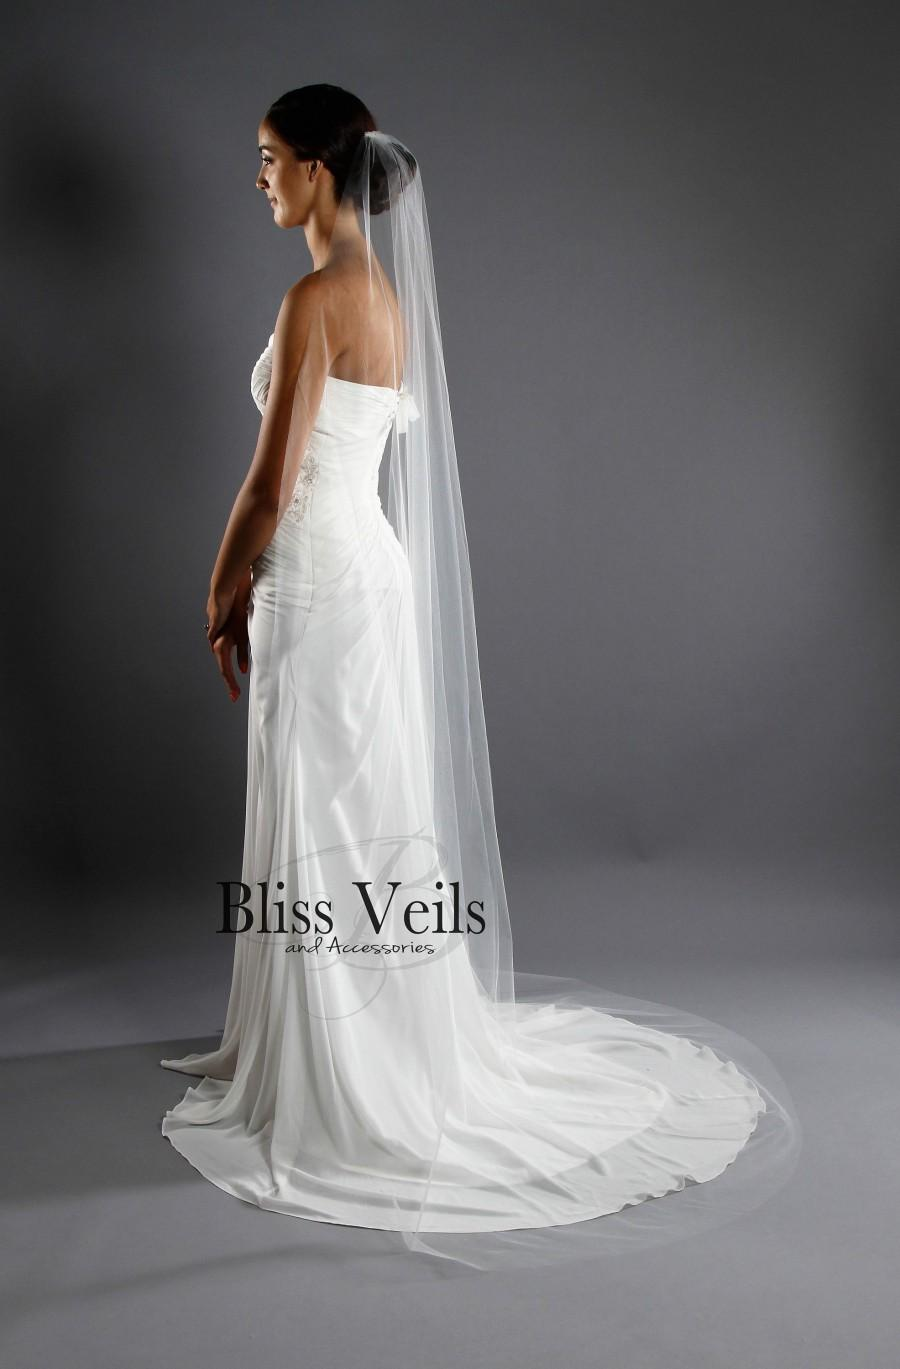 Mariage - Sheer Simple Wedding Veil - One Tier Raw Edge Veil - Available in 10 Sizes and 11 Colors - Fast Shipping!